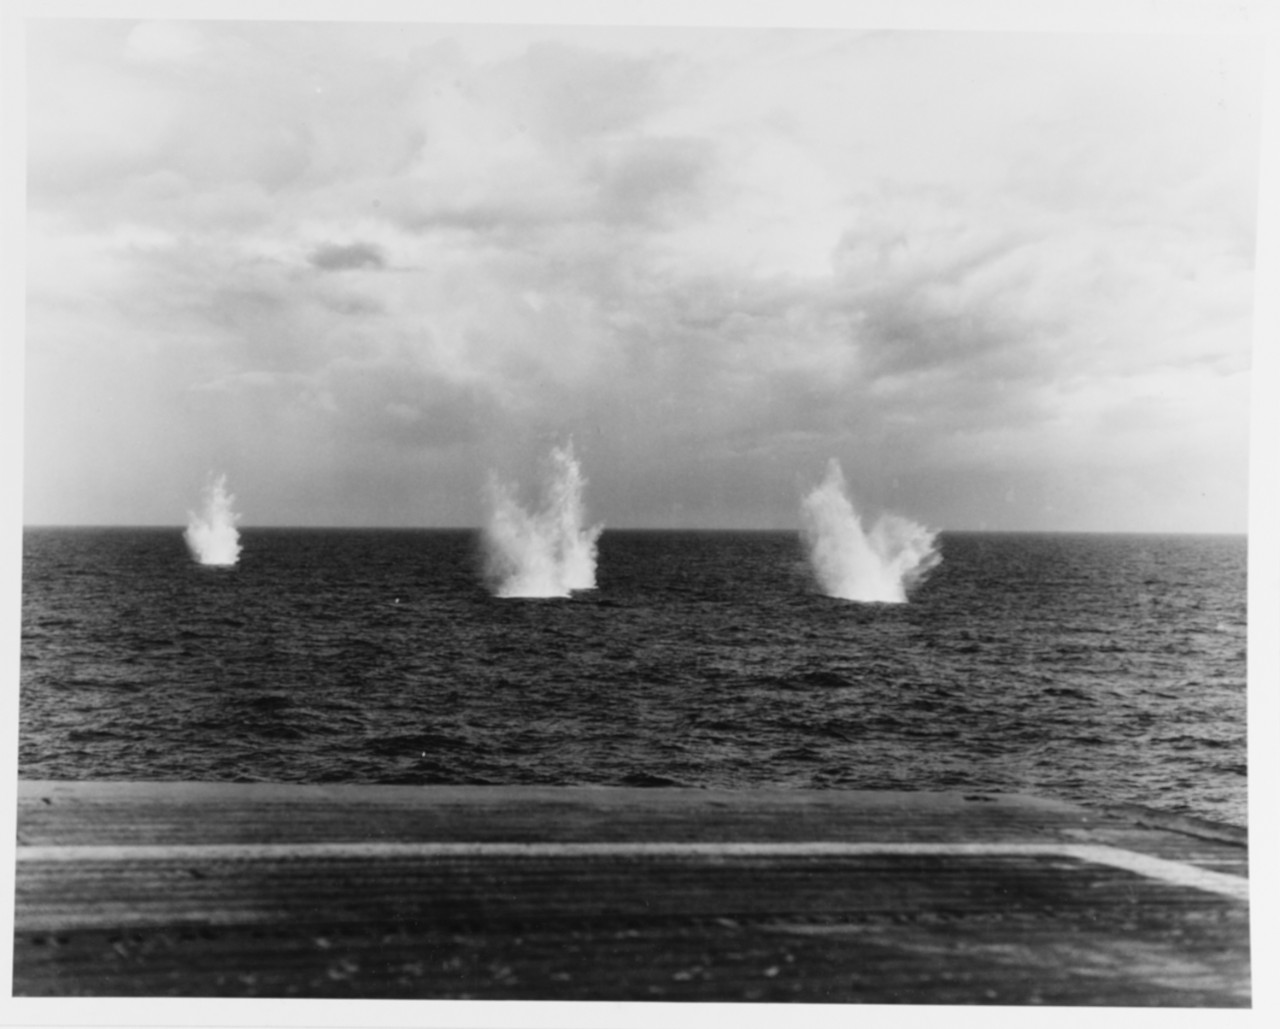 Battle off Samar, 25 October 1944.